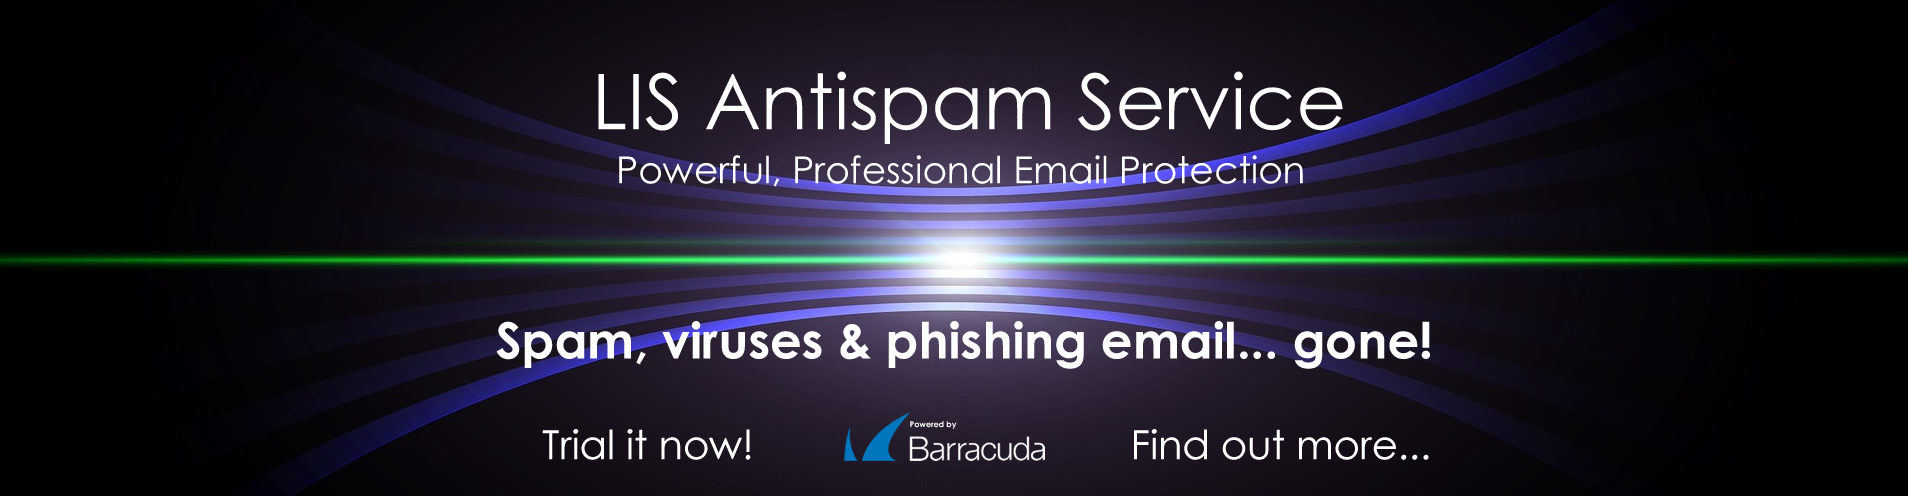 Barracuda Spam and Virus Protection for Email Systems